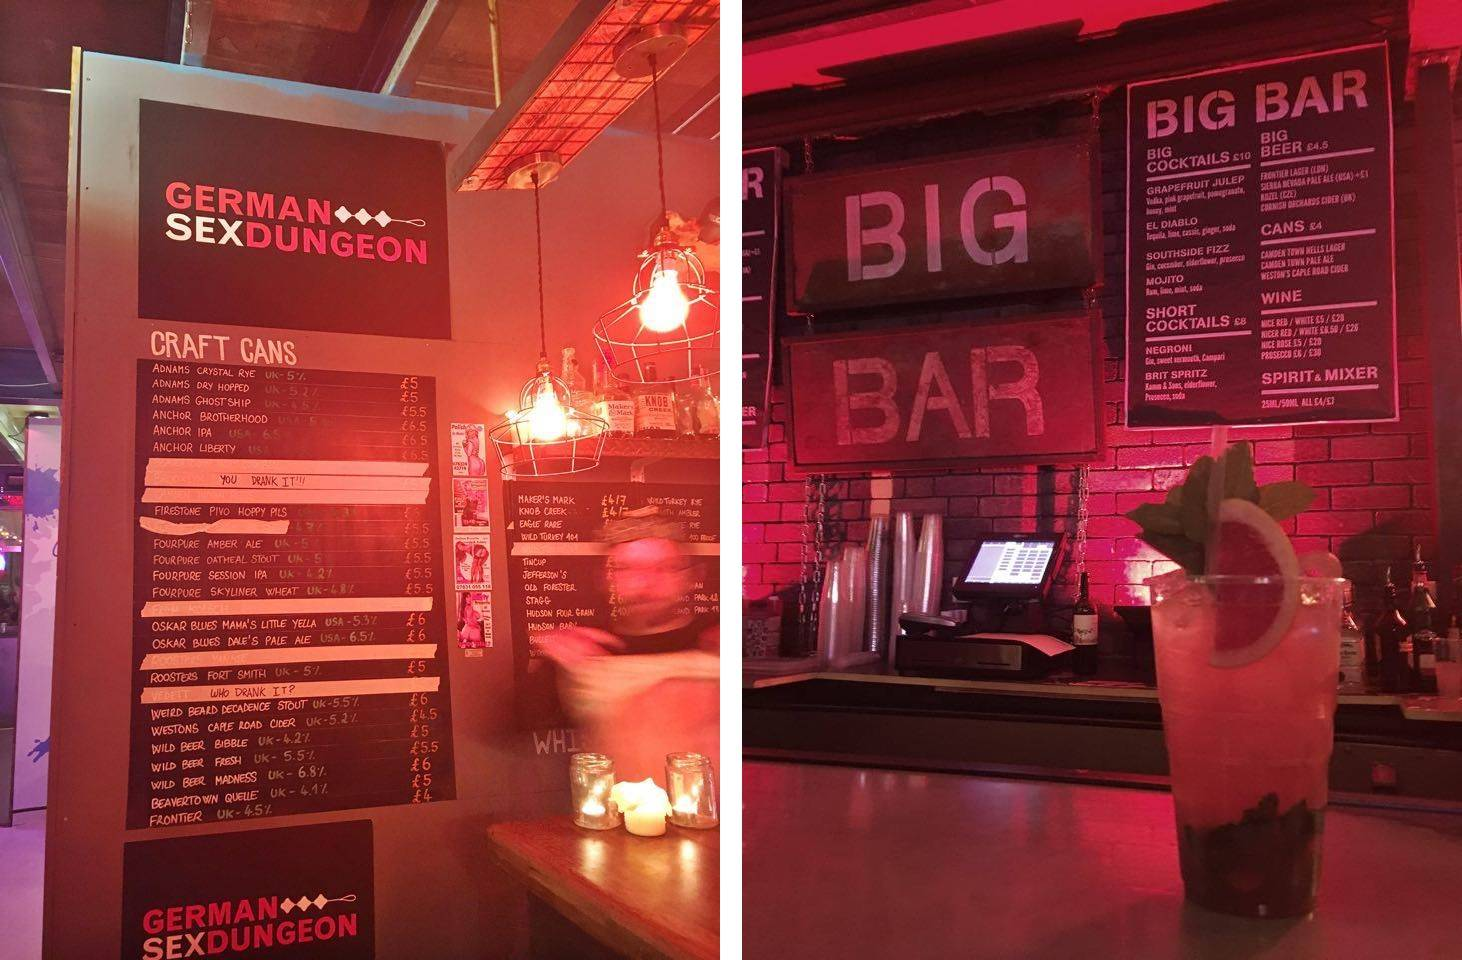 German Sex Dungeon & Big Bar @ Dinerama, Shoreditch